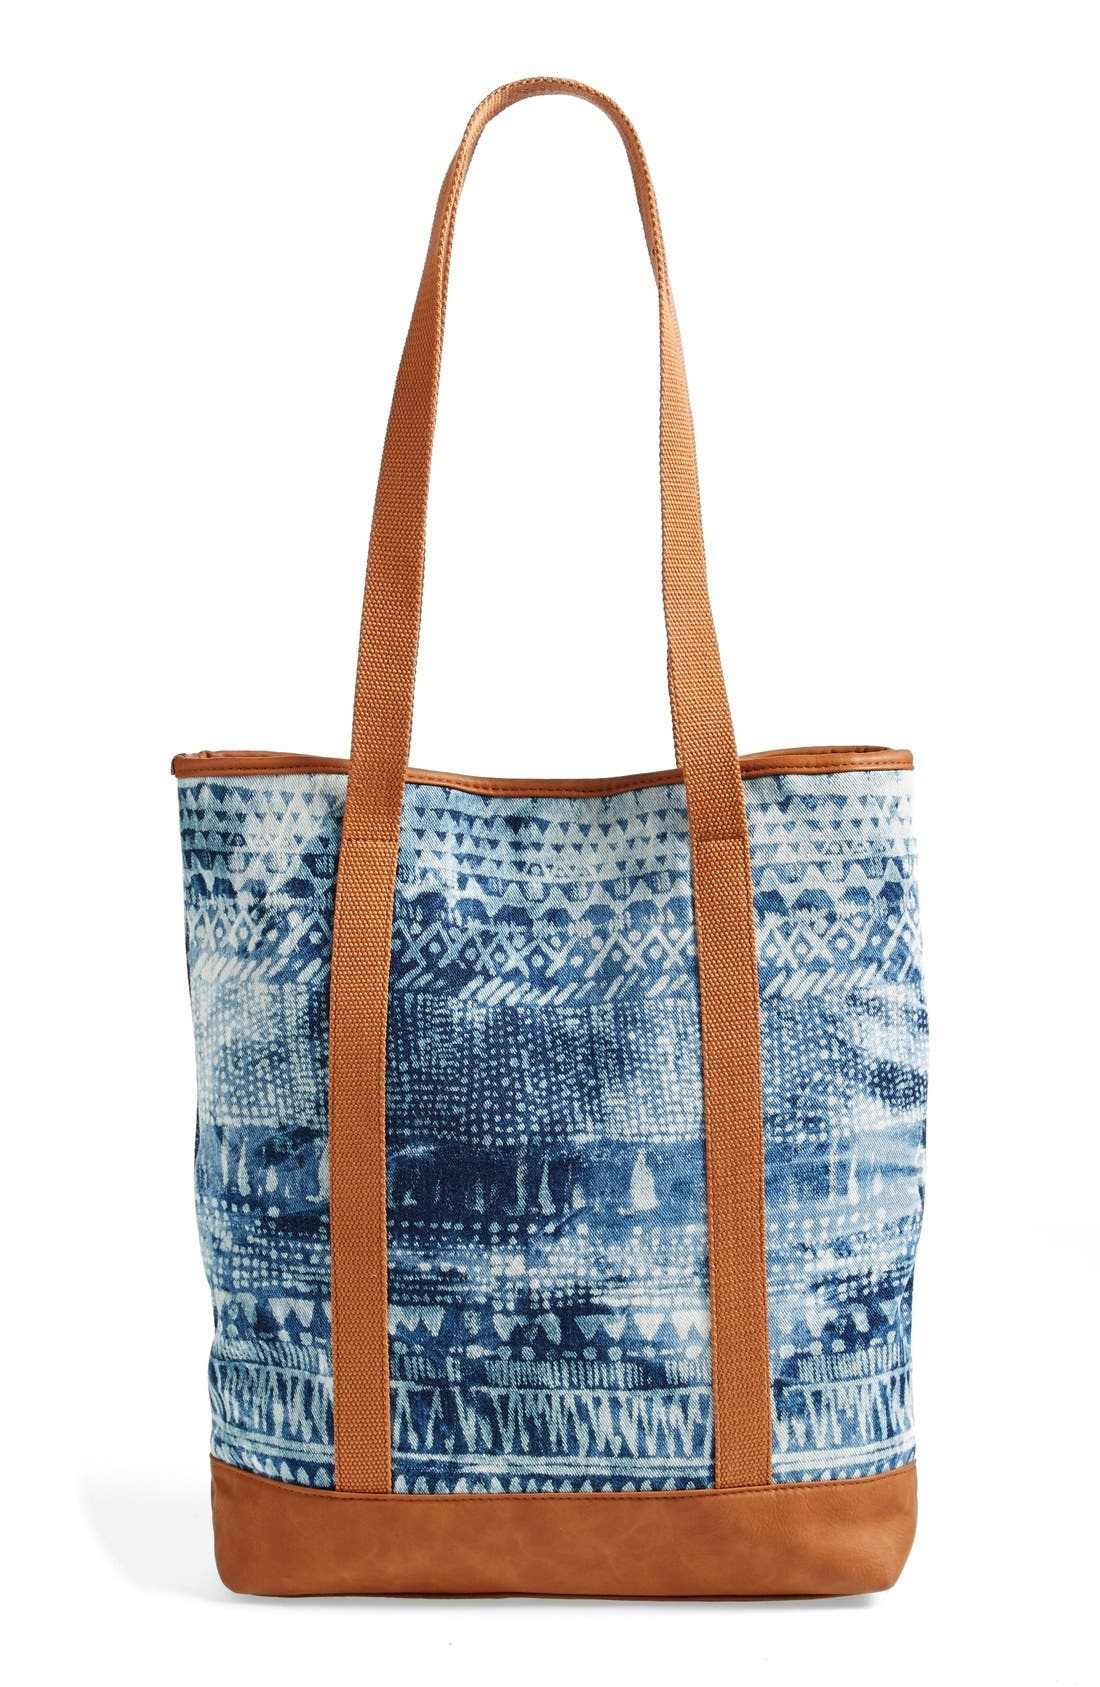 VOLCOM,                             'Thrifty Fun' Bleach Pattern Tote,                             Alternate thumbnail 3, color,                             200